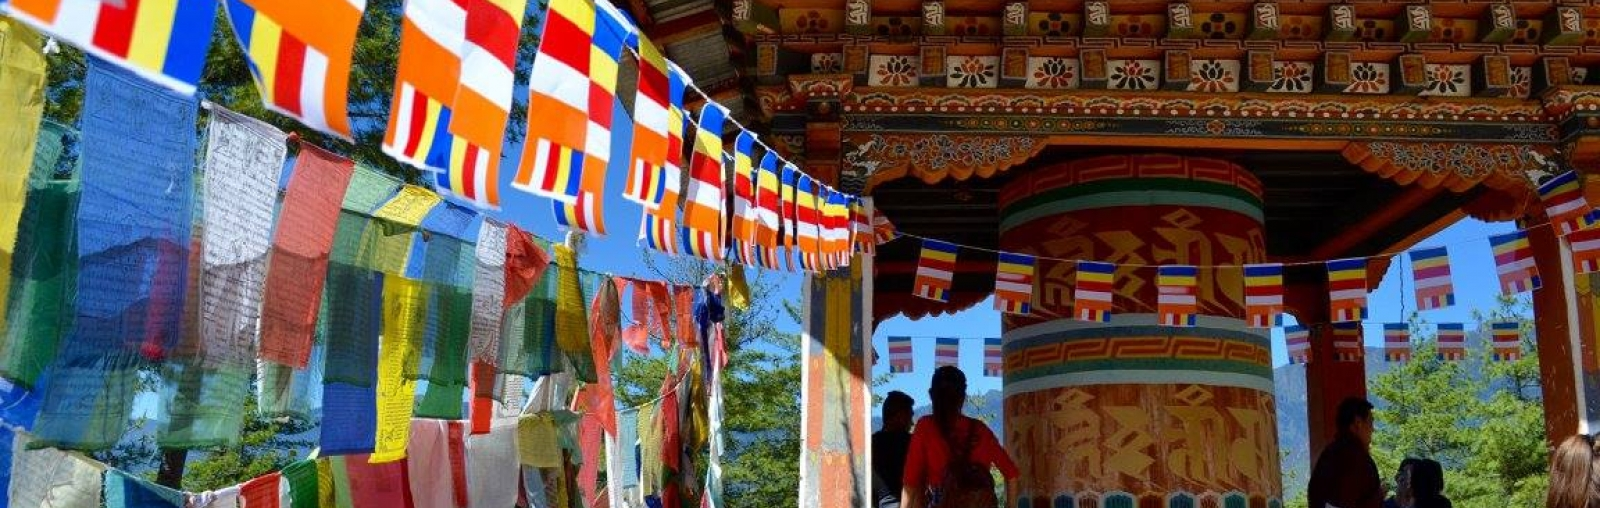 student study abroad photo from Bhutan